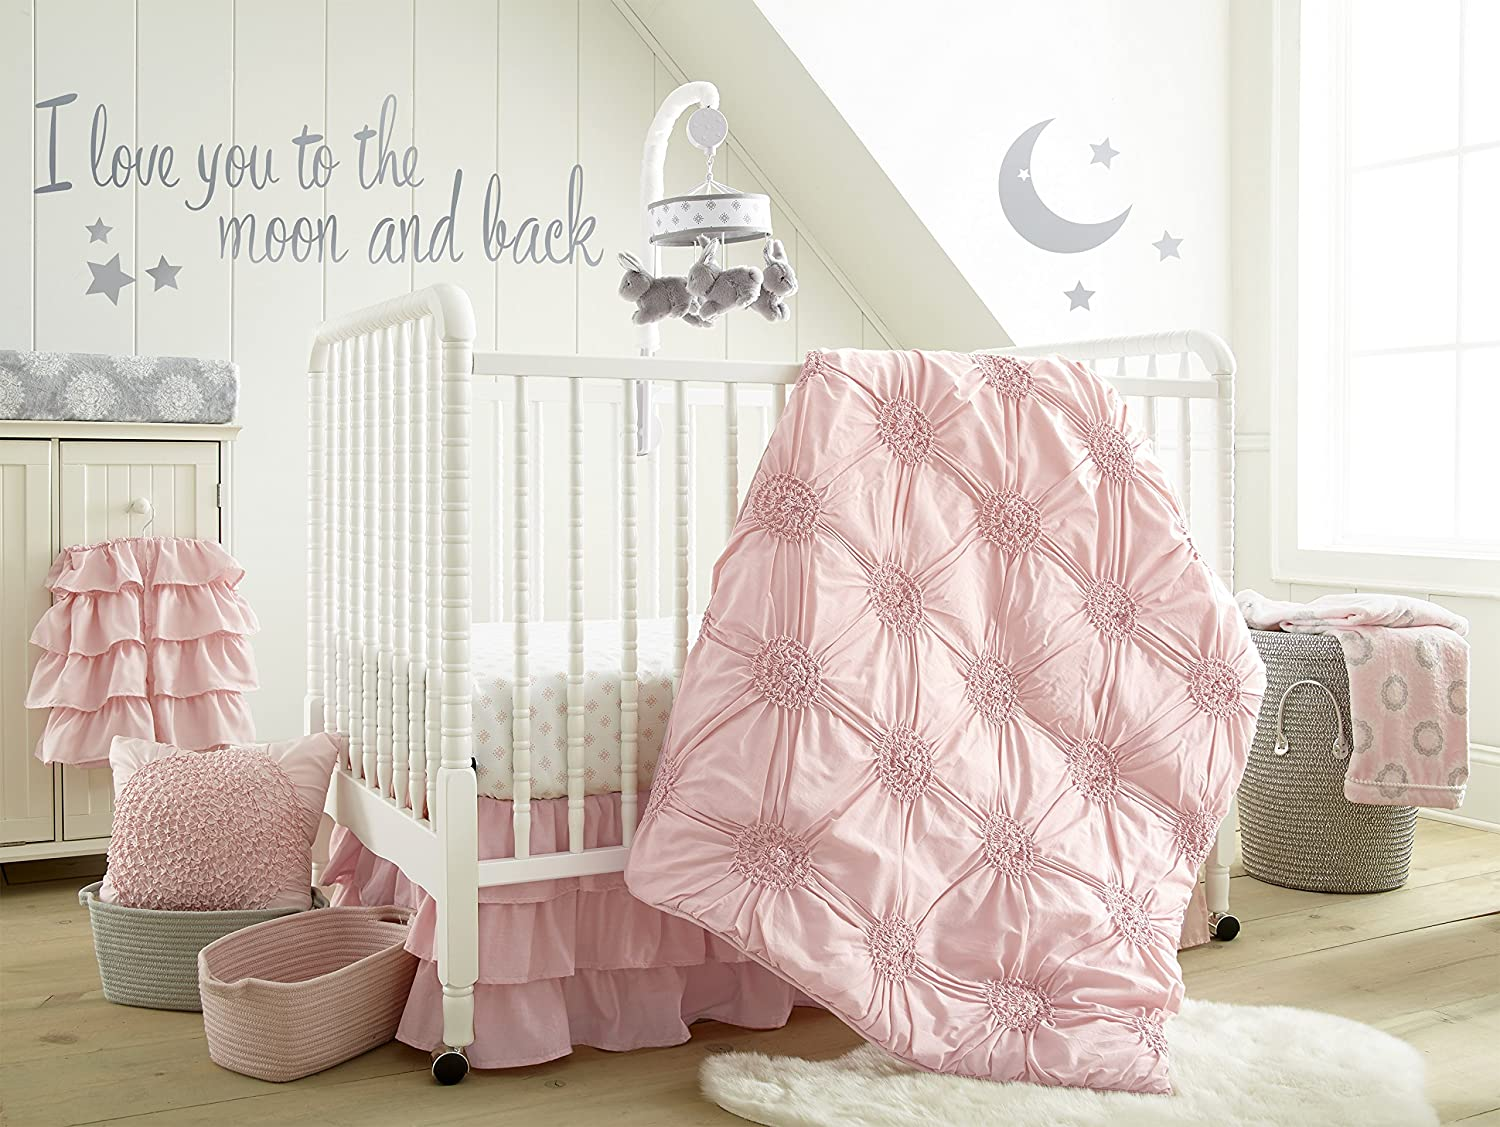 Amazon Com Levtex Baby Willow Crib Bed Set Baby Nursery Set Pink Soft Rosette Pintuck 5 Piece Set Includes Quilt Fitted Sheet Diaper Stacker Wall Decal Crib Skirt Dust Ruffle Baby